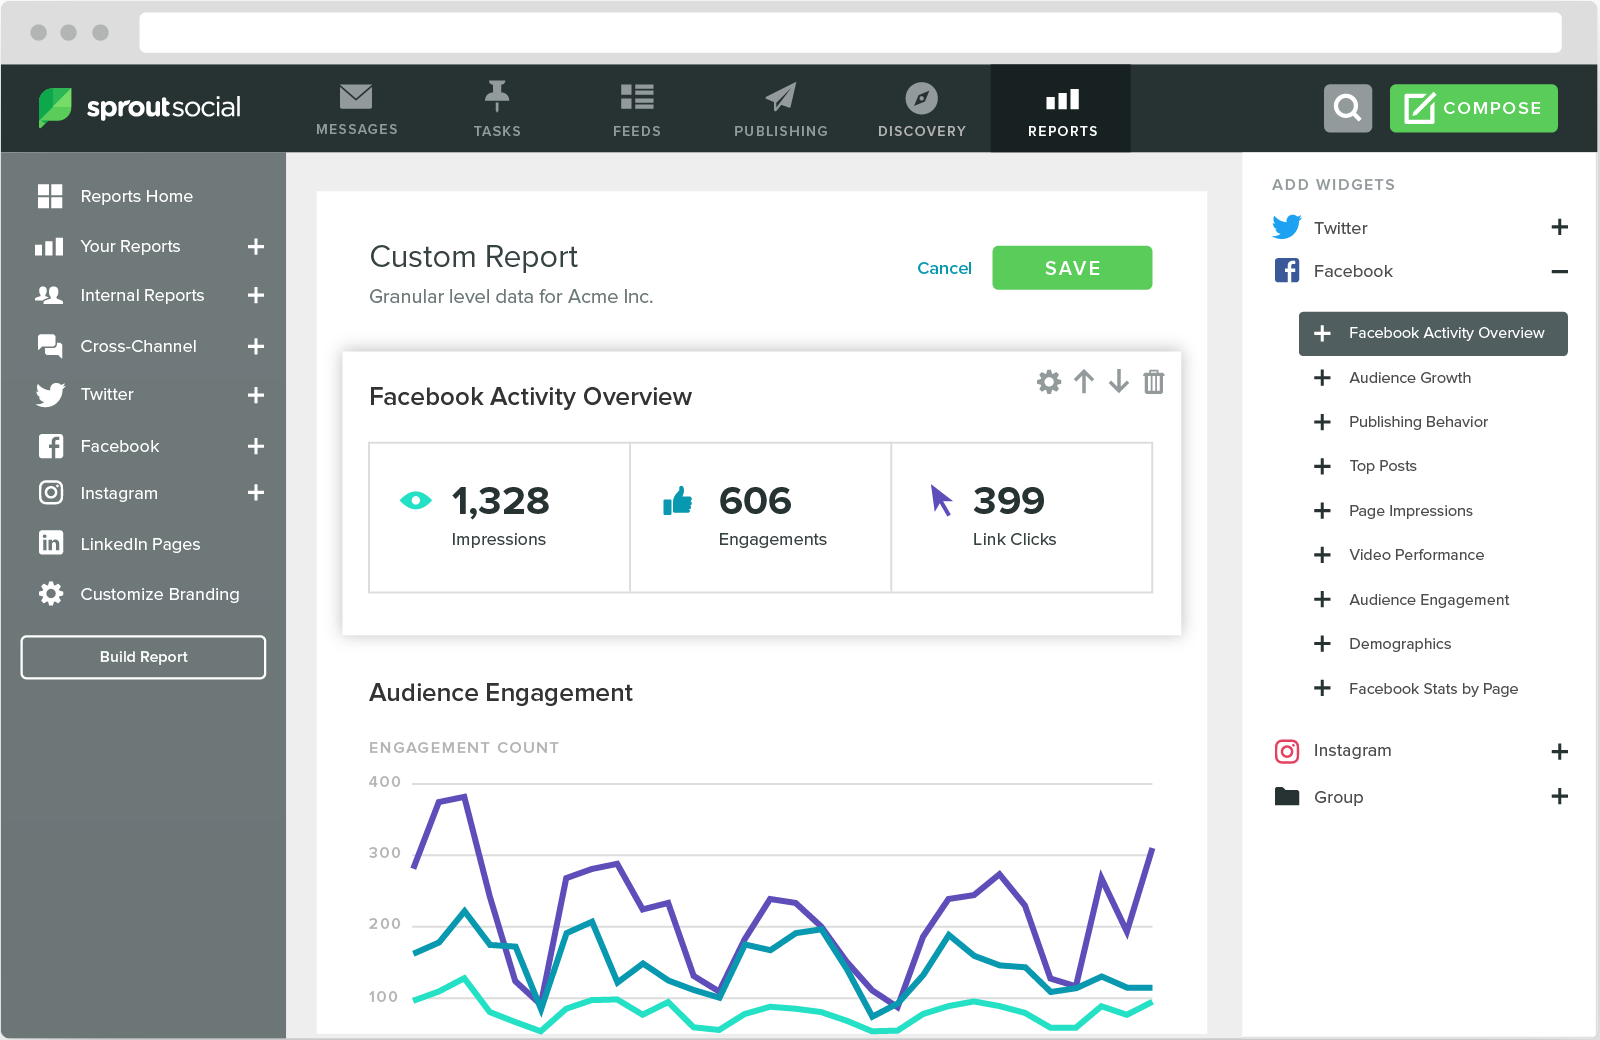 Mining your social media data may further help you measure your interpersonal ROI